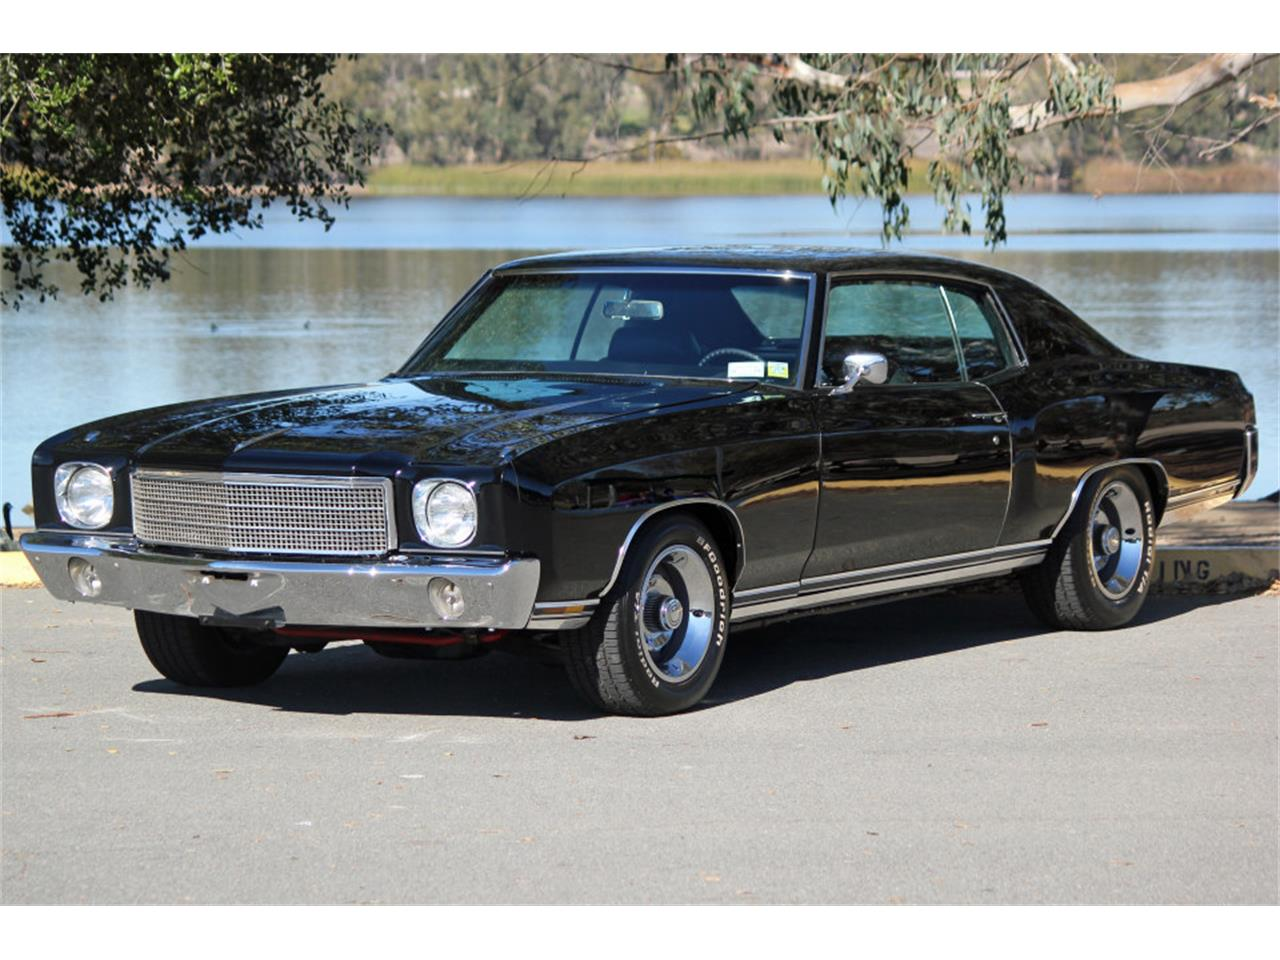 Large Picture of Classic '70 Chevrolet Monte Carlo located in San Diego CA - California - $39,500.00 Offered by Precious Metals - PWFG